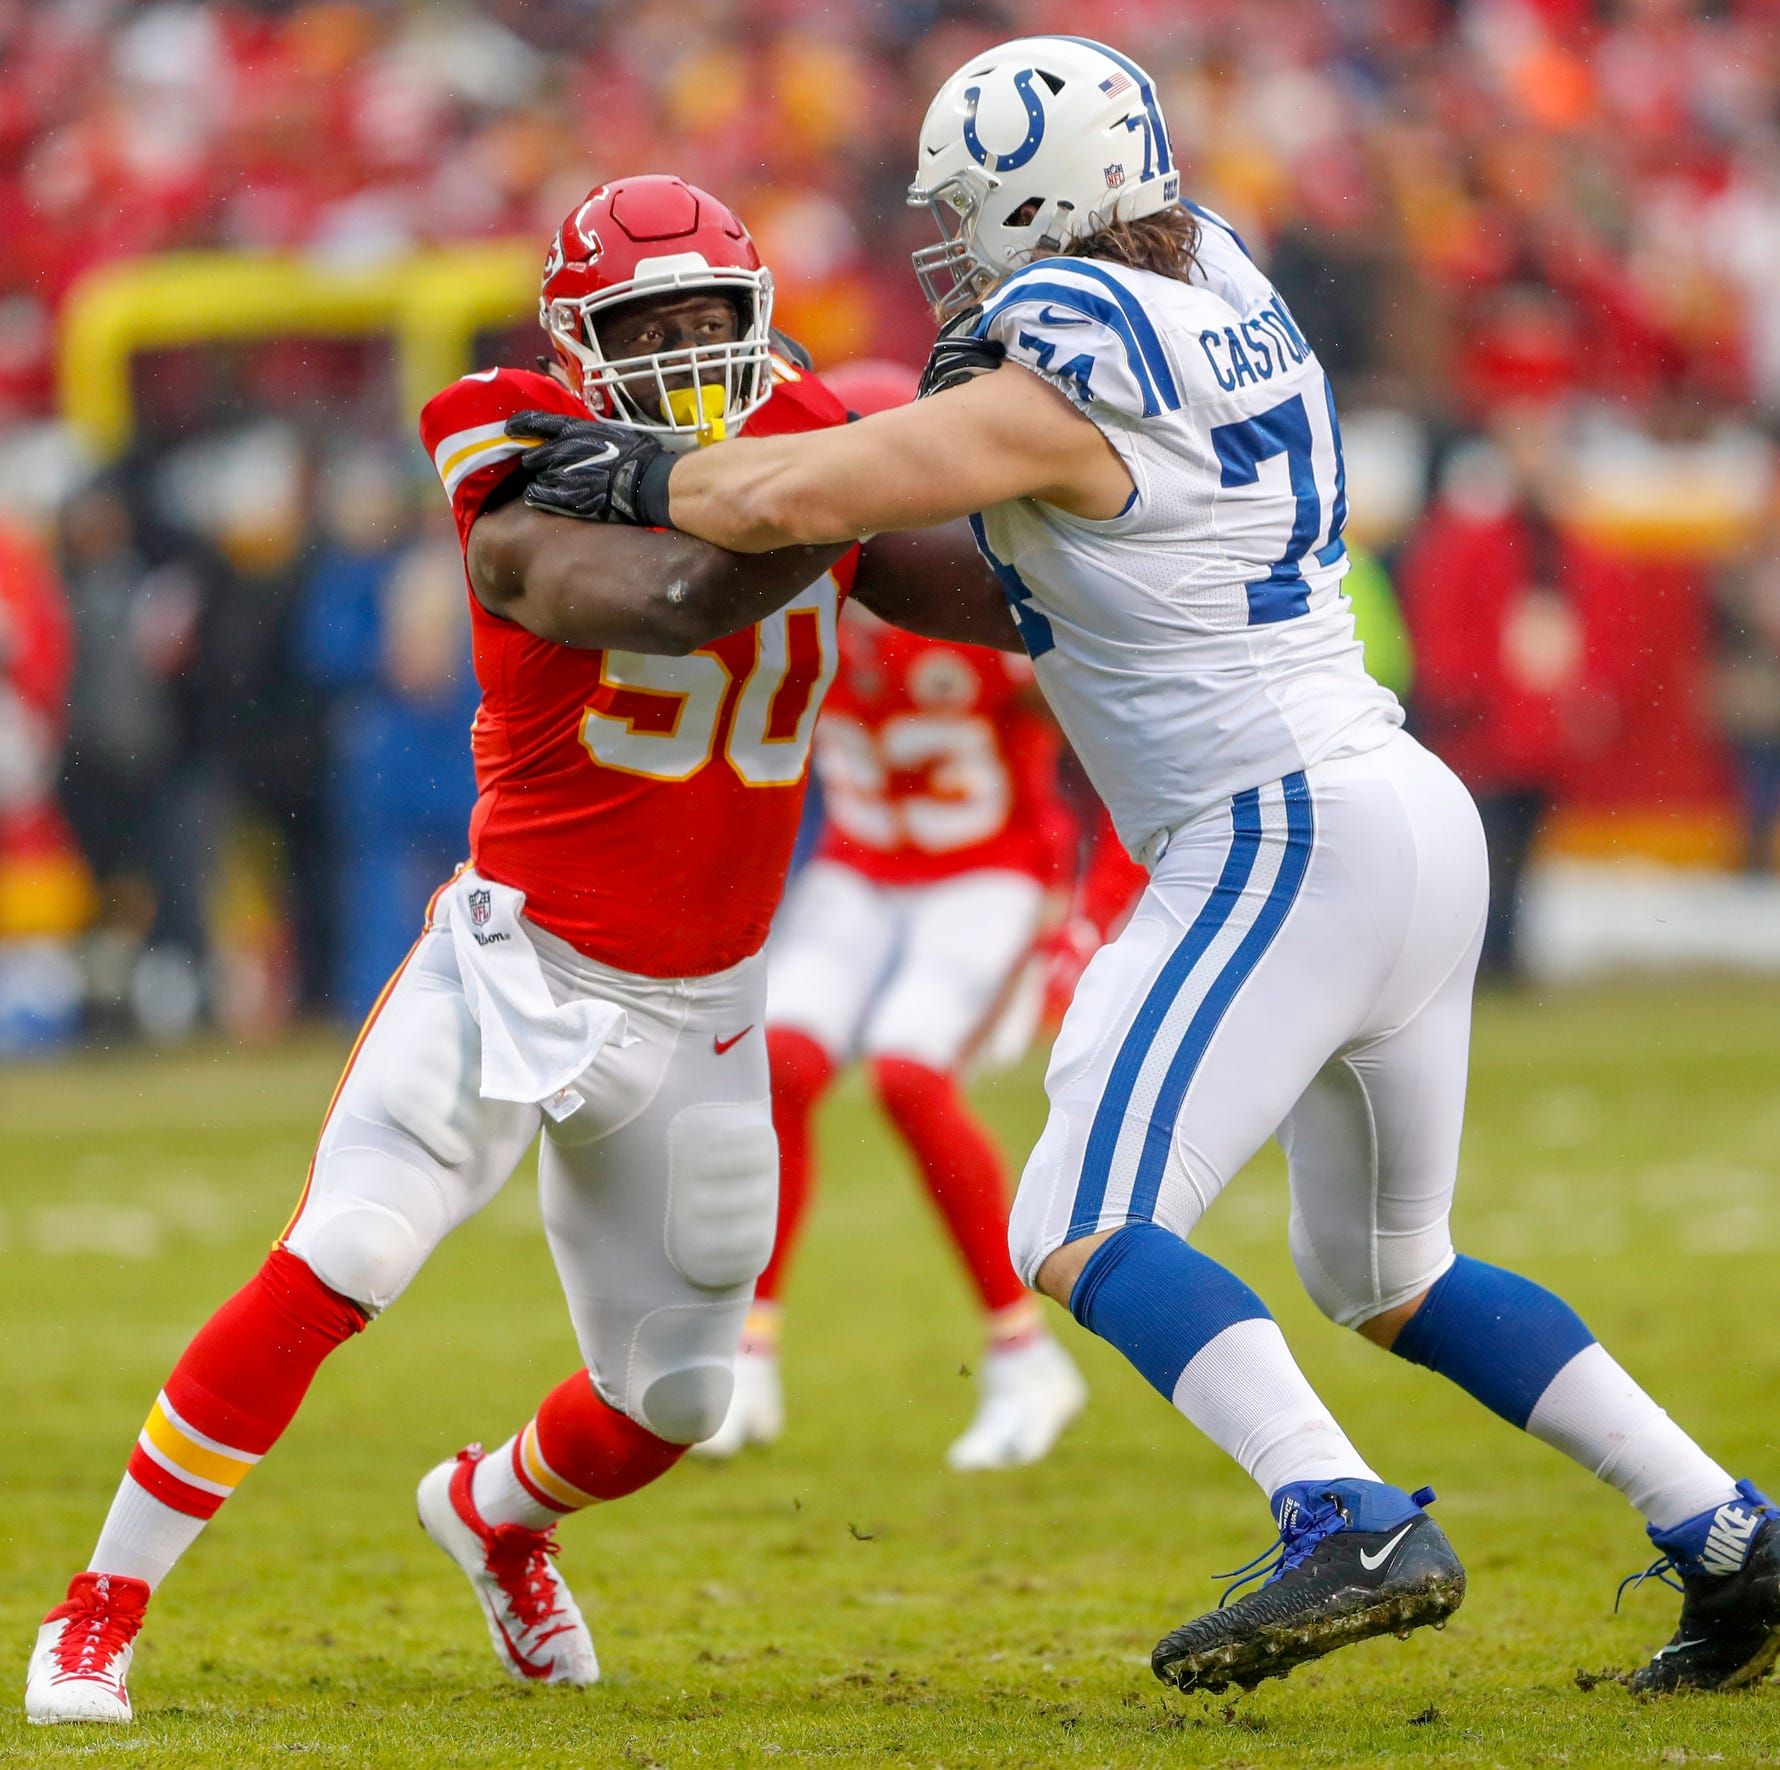 Colts land big-name free agent in pass rusher Justin Houston